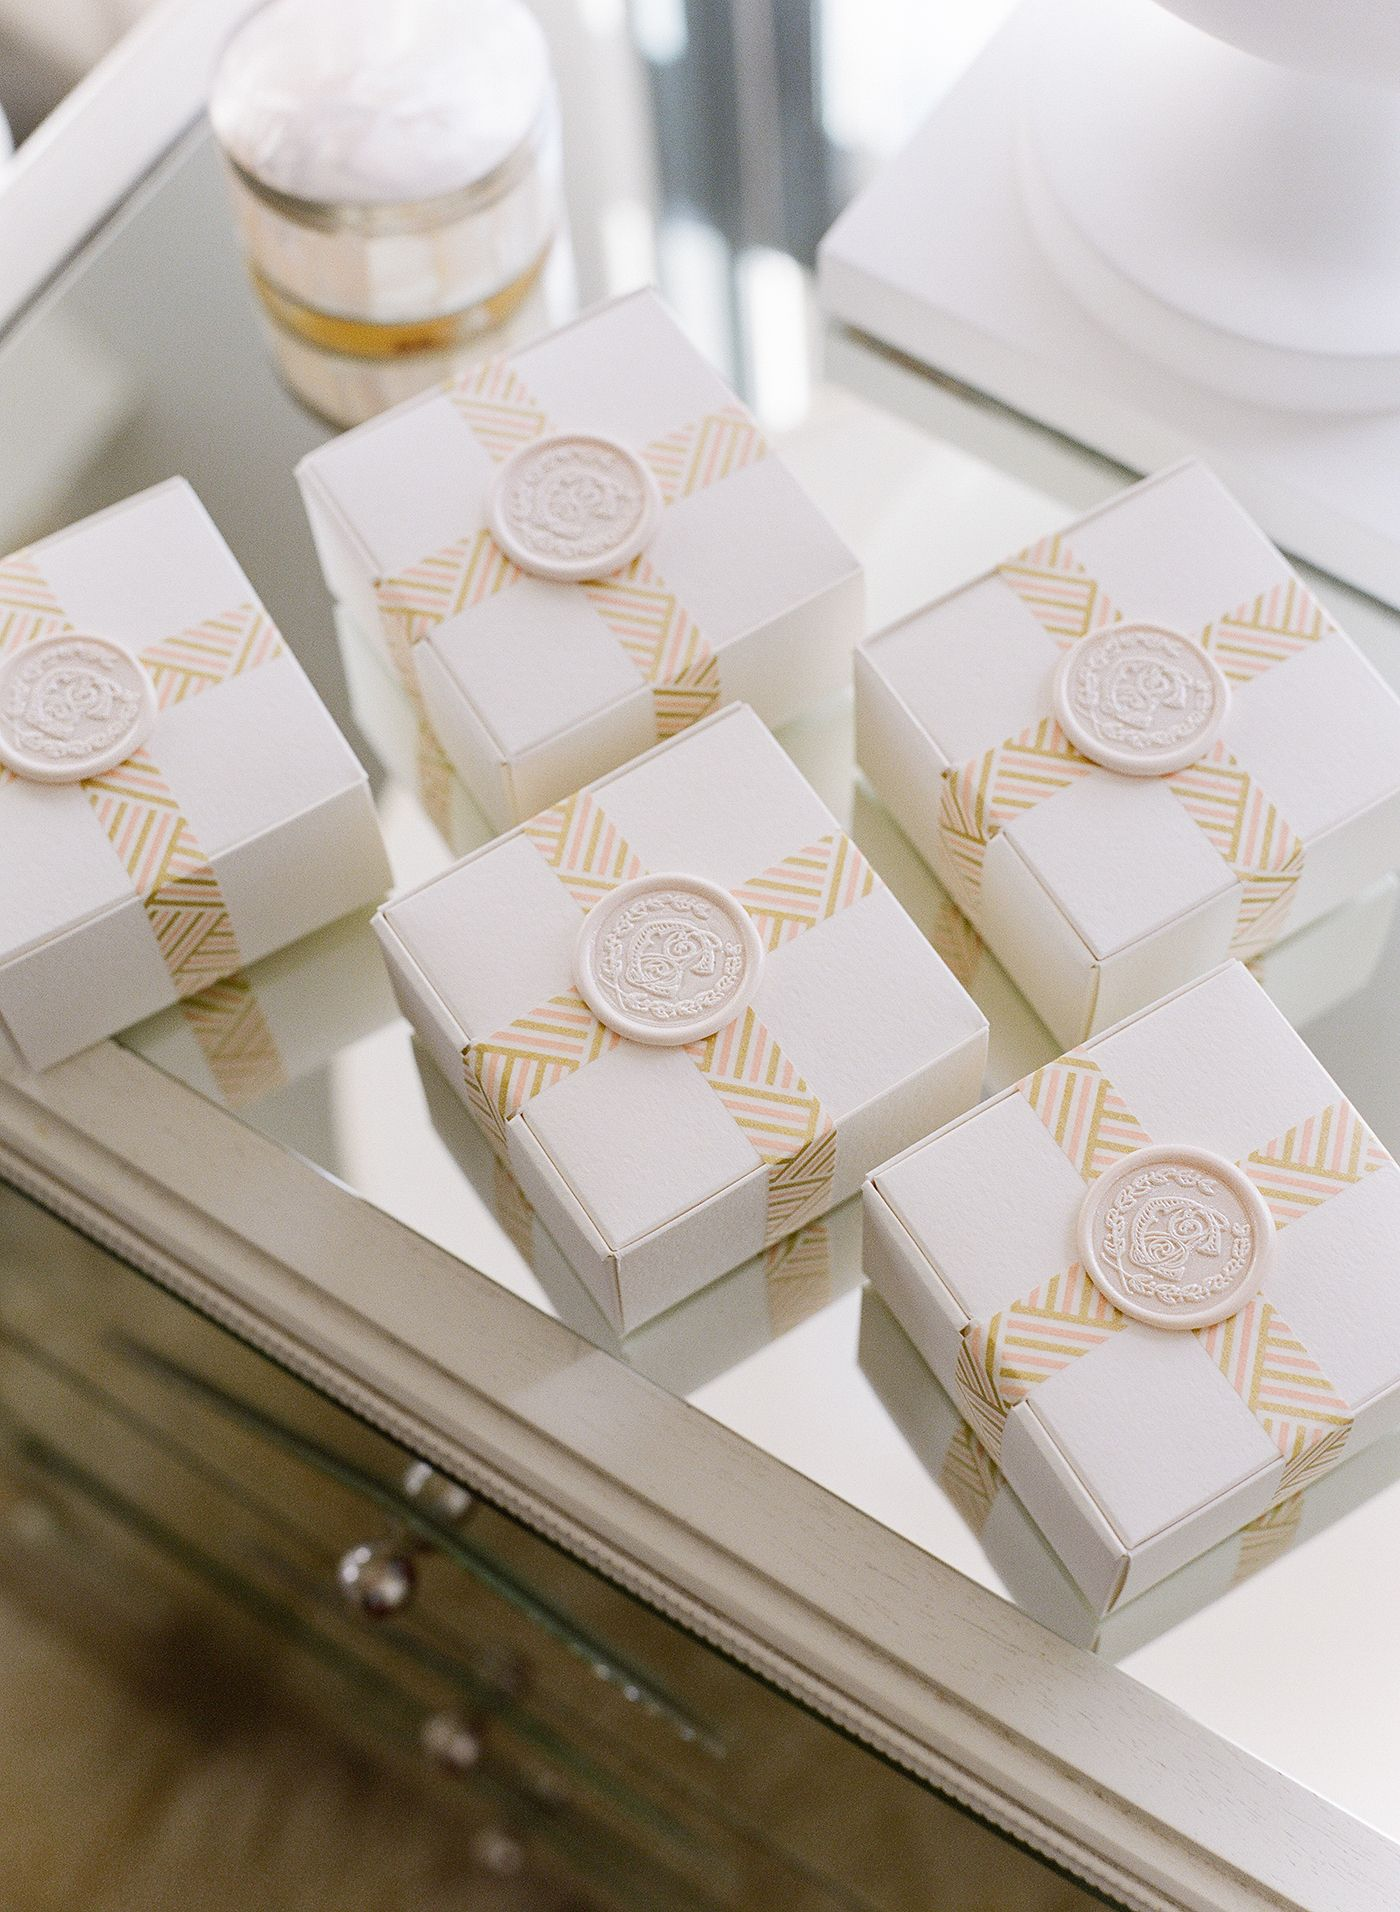 Rosemary Beach Wedding, bridesmaid gift box idea, gift box wax seal ...